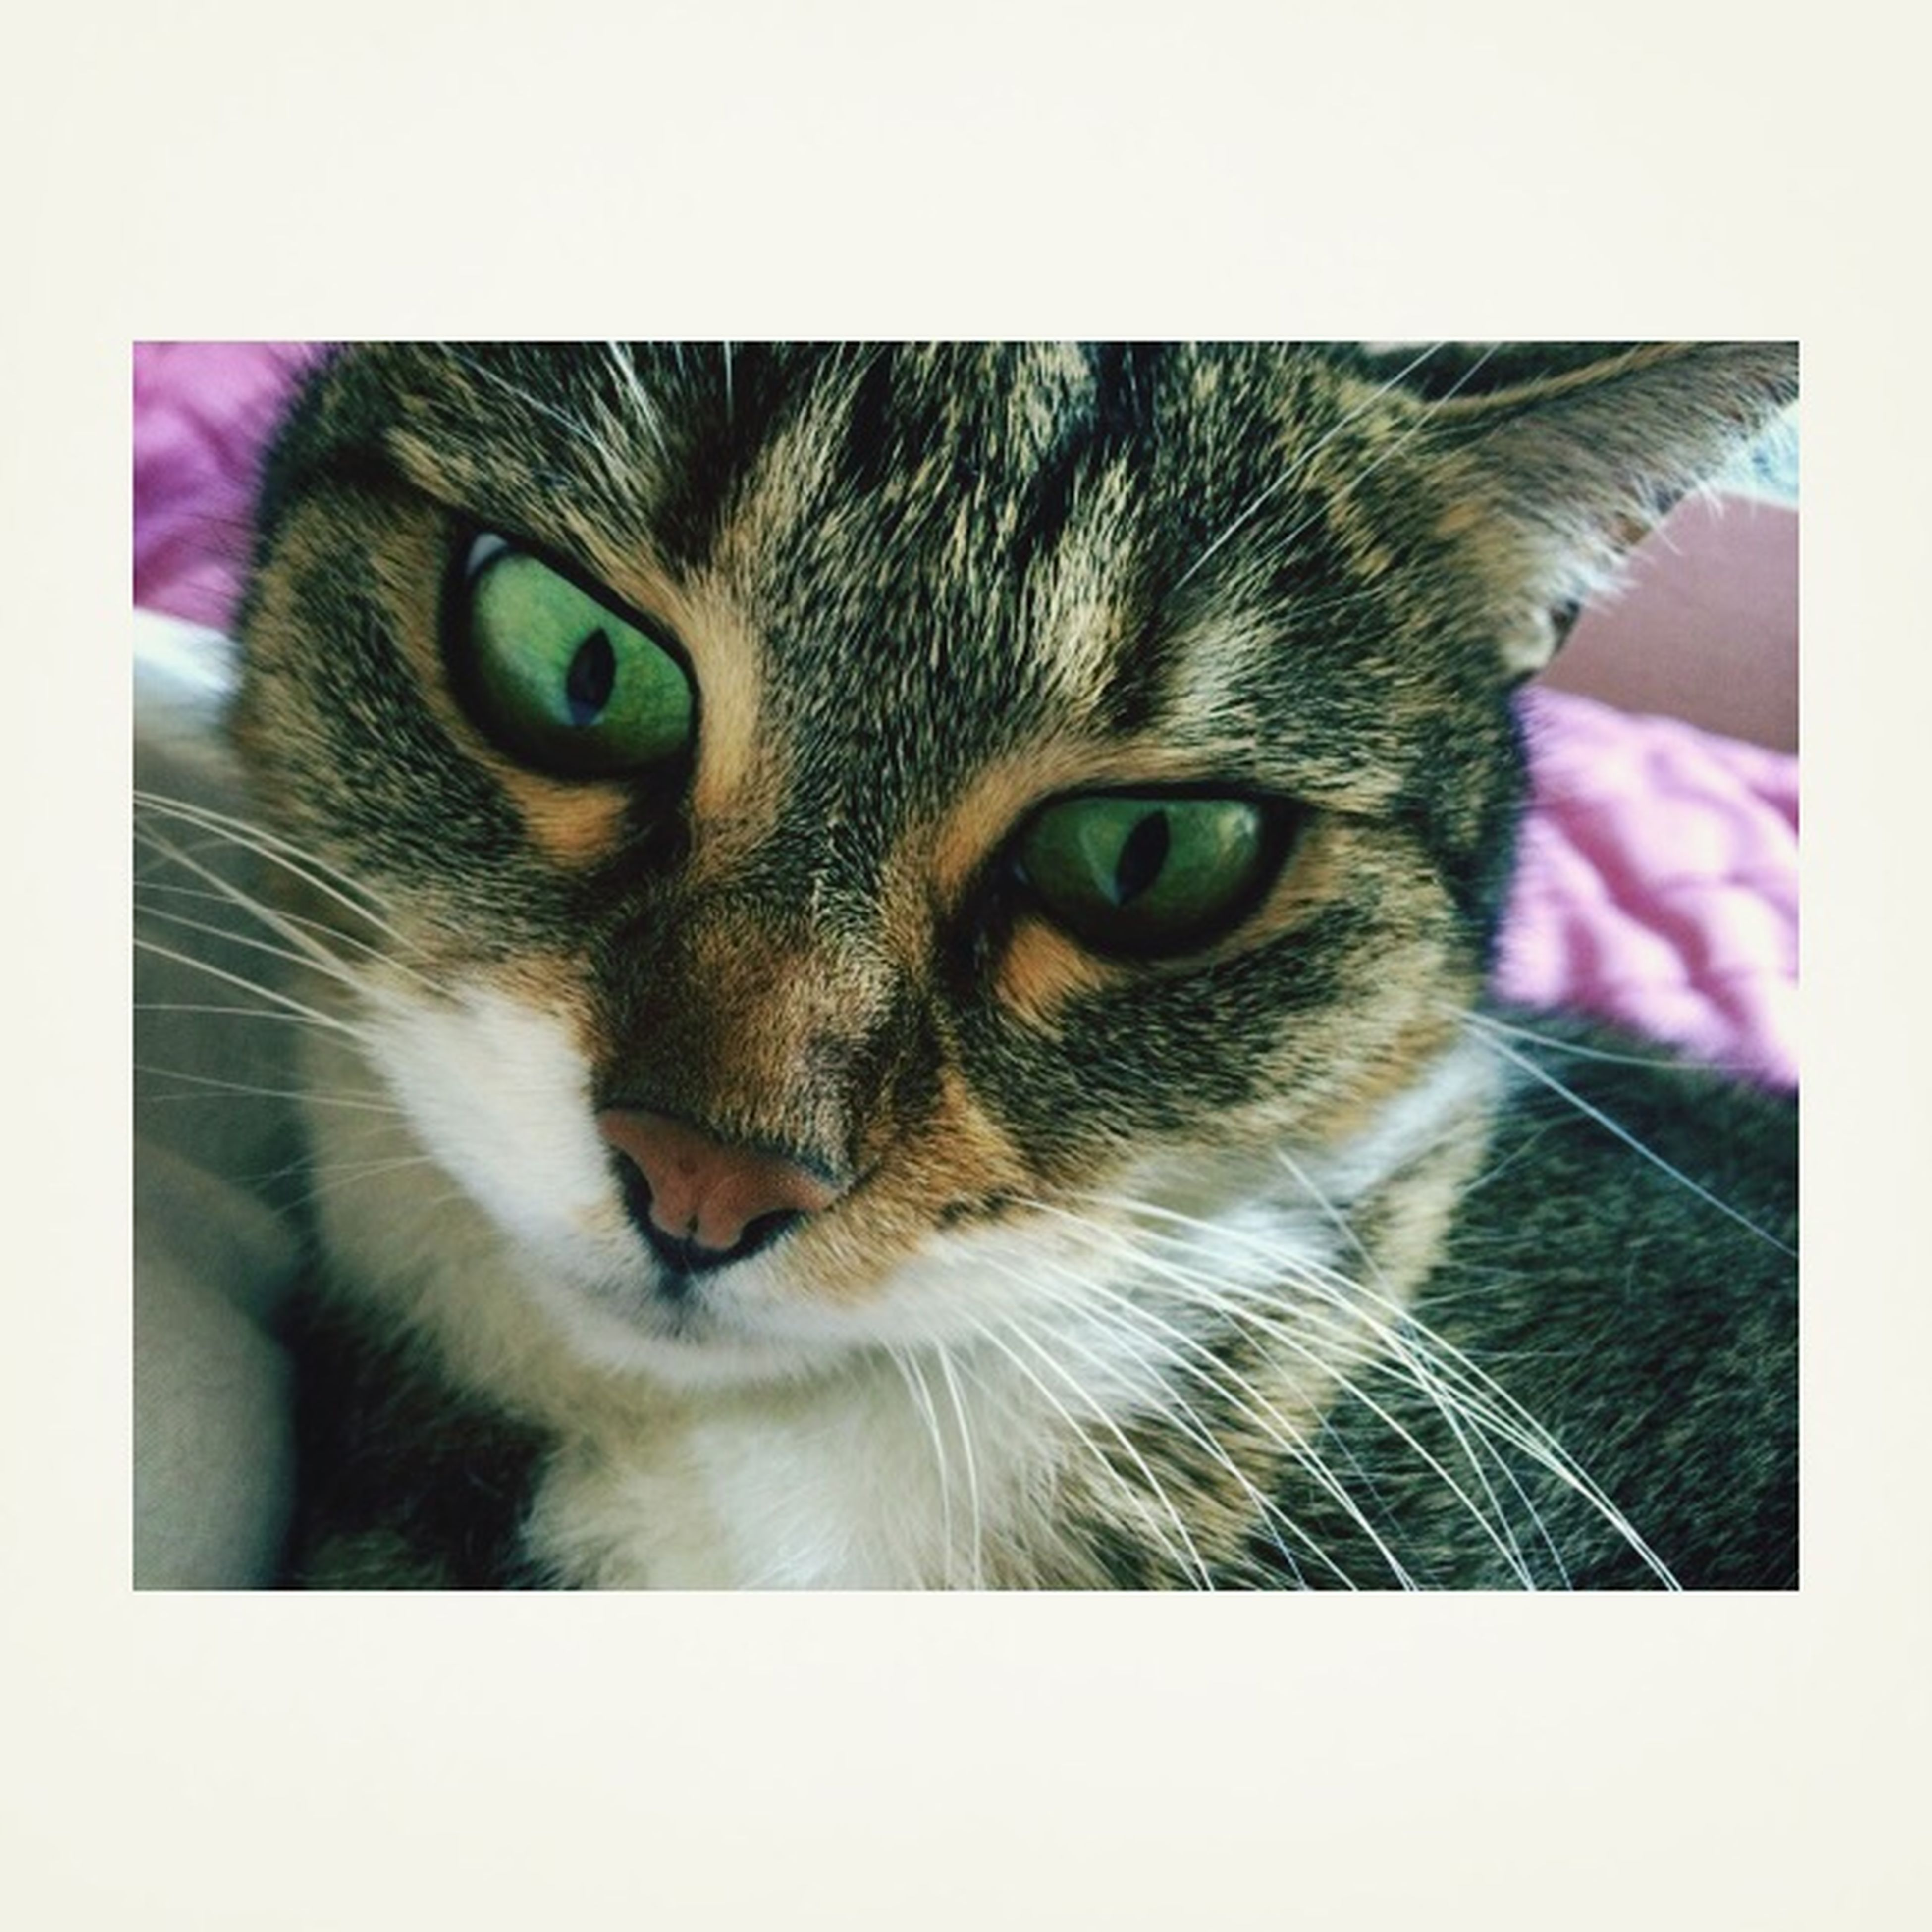 domestic cat, one animal, pets, transfer print, cat, domestic animals, animal themes, feline, portrait, whisker, looking at camera, auto post production filter, mammal, close-up, indoors, animal head, animal eye, staring, alertness, front view